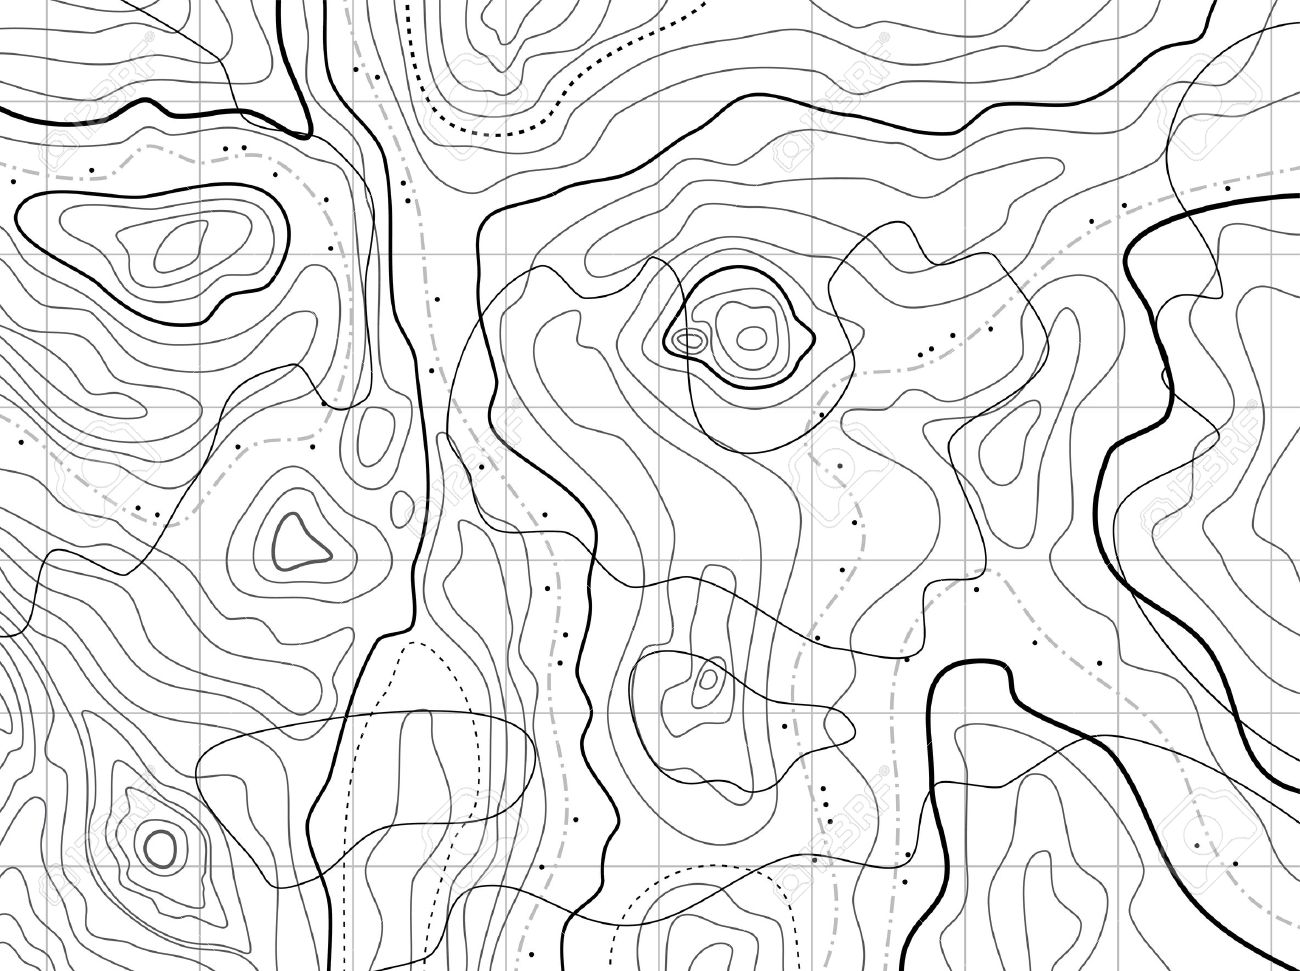 Abstract Topographical Map With No Names Royalty Free Cliparts - Topographical map